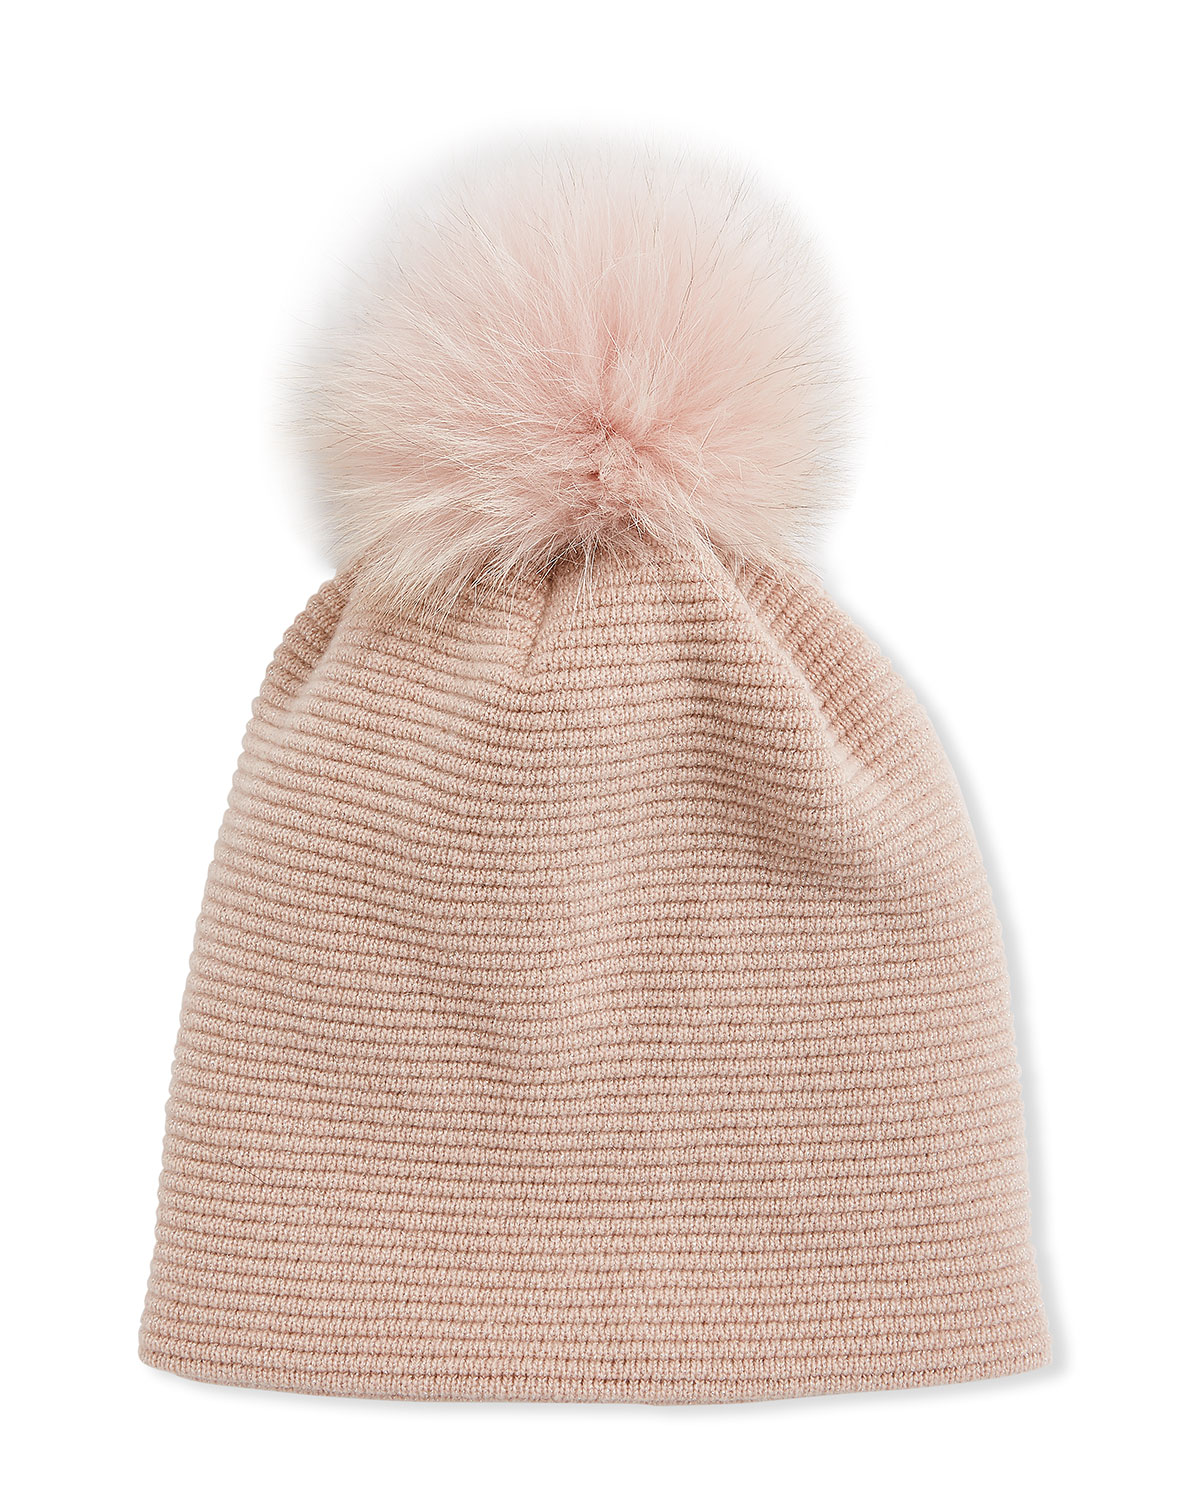 Inverni MERINO WOOL-BLEND KNIT BEANIE HAT W/ FOX FUR POMPOM